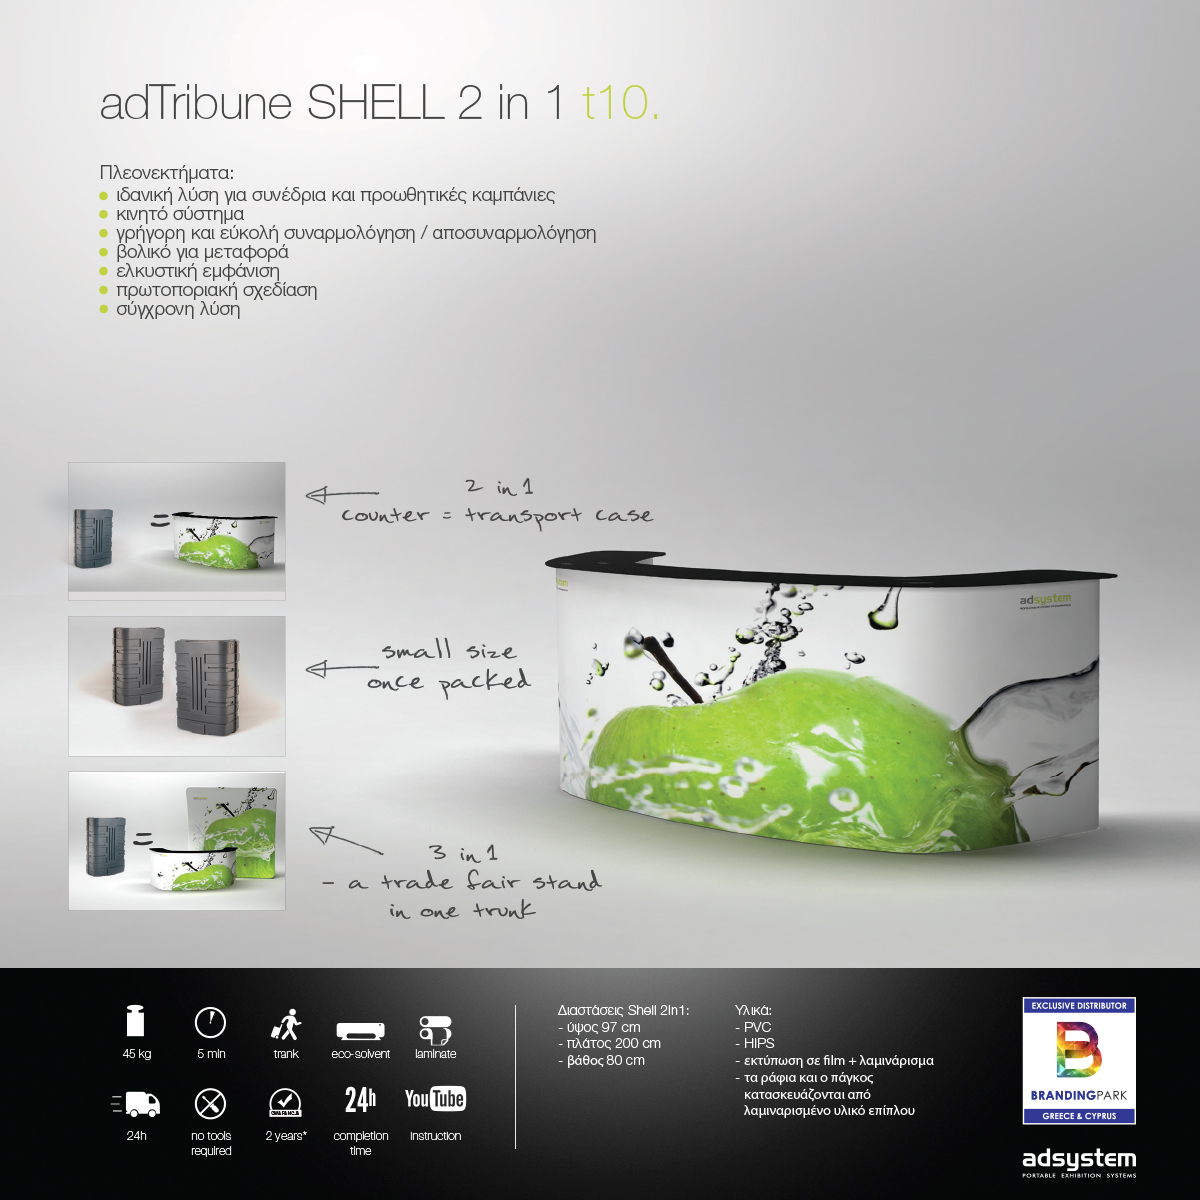 AdTribune SHELL 2 in 1 t10.